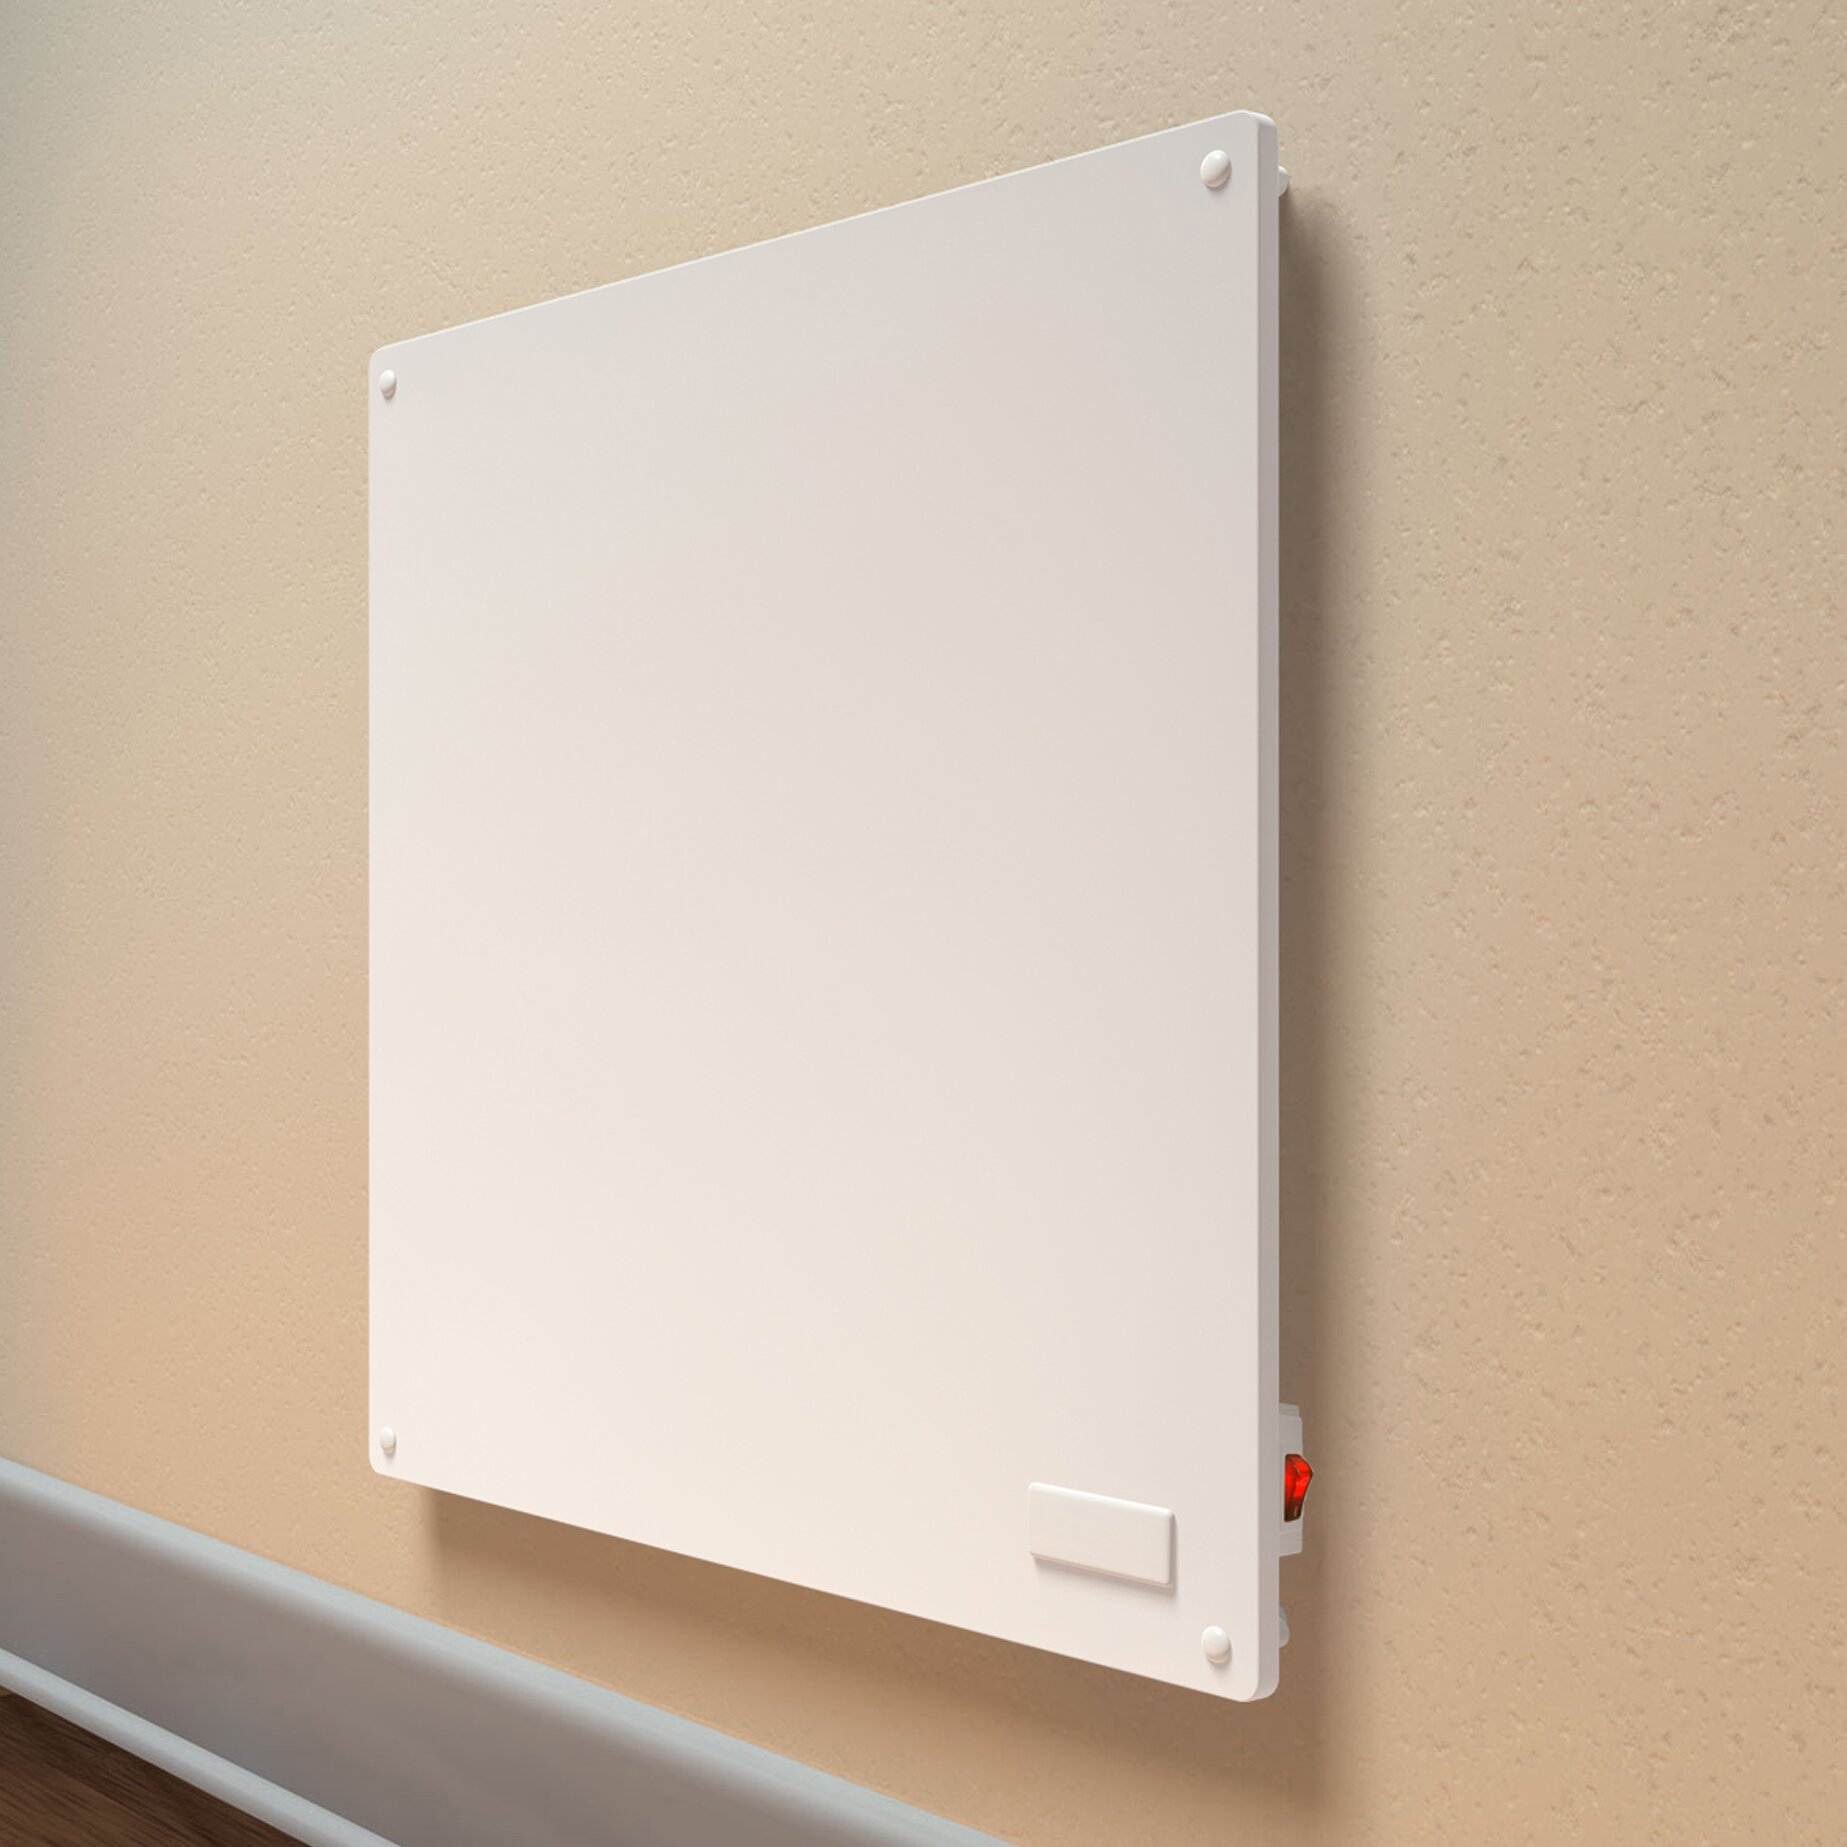 Wall mounted electric bathroom fan heaters - Electric Bathroom Heaters Wall Mounted My Value